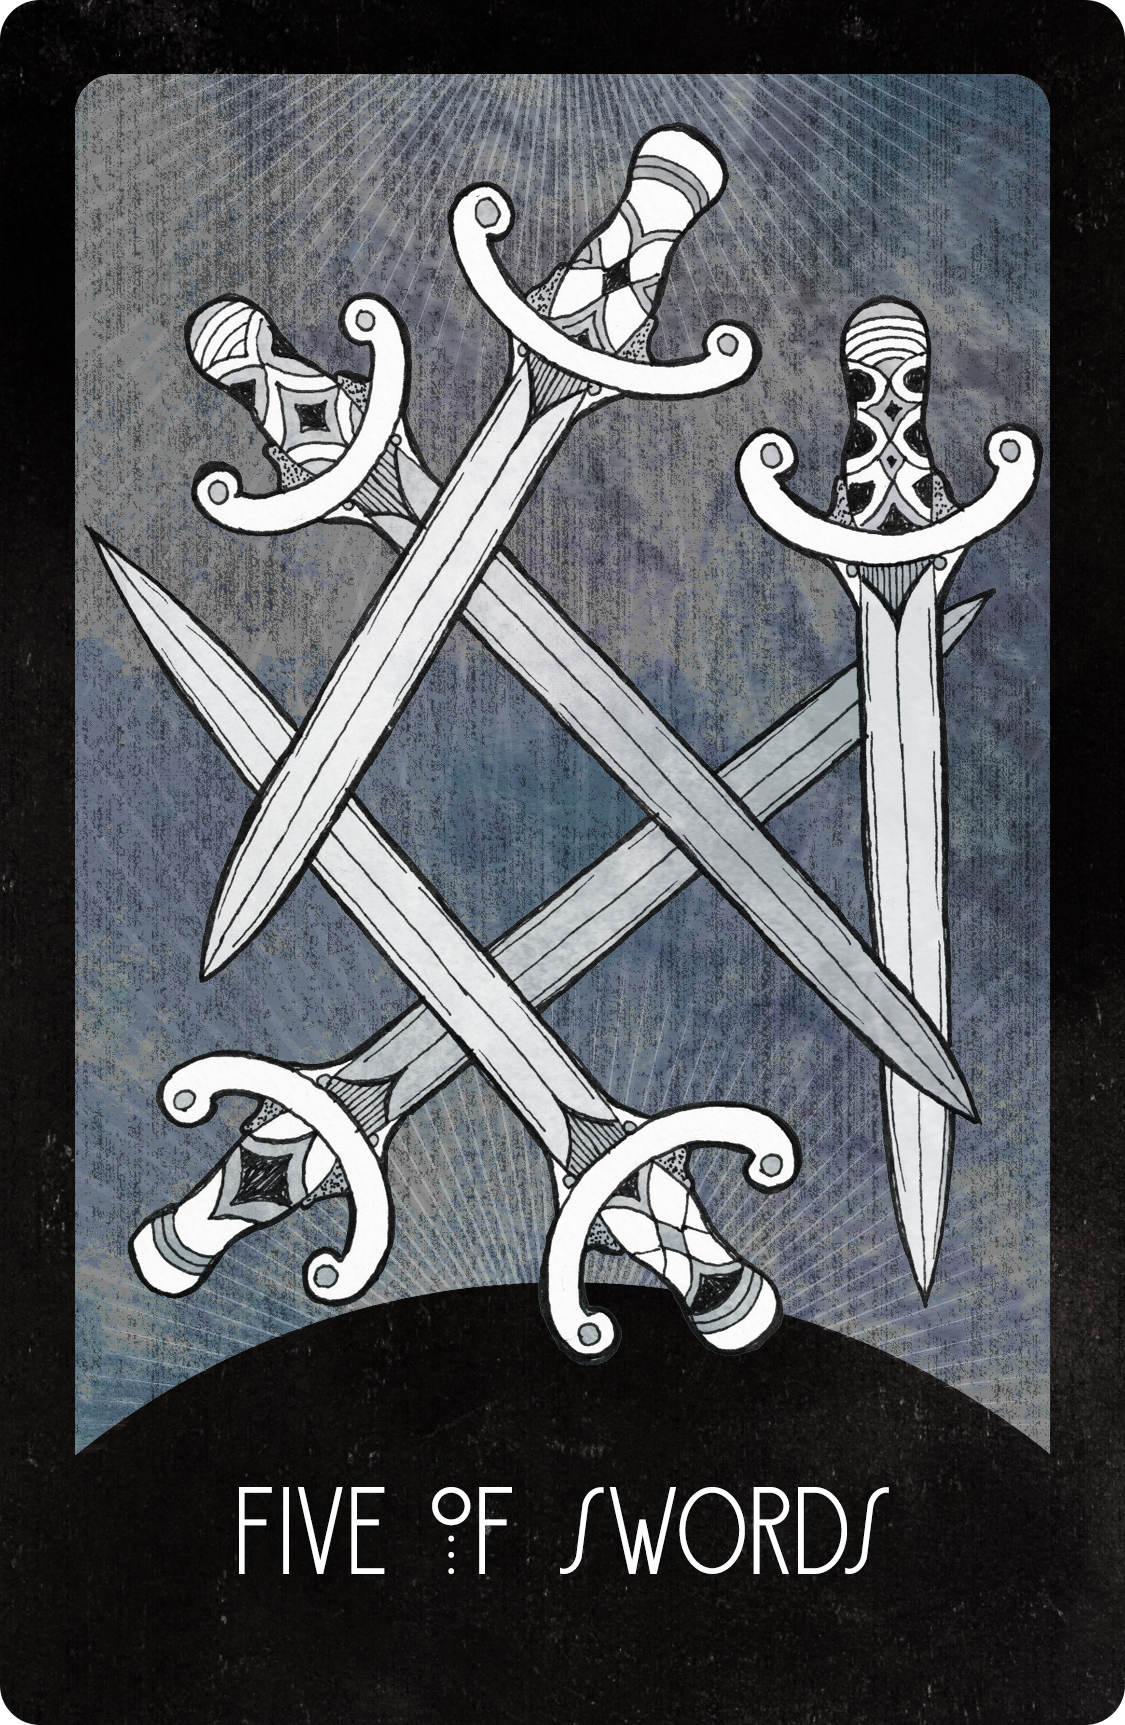 Inspirational Tarot Deck Five of Swords